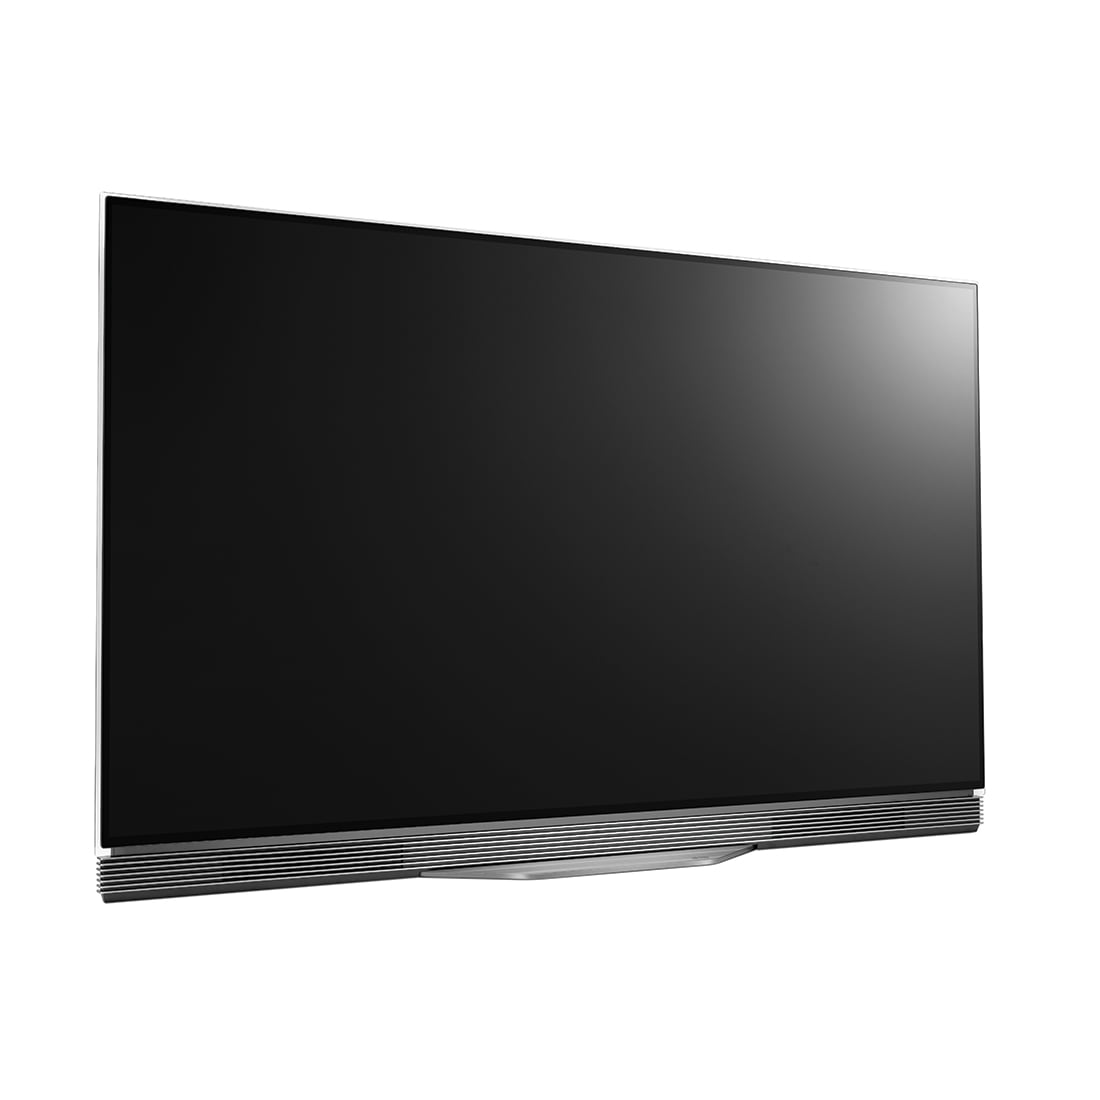 lg oled55e7p 55 4k hdr smart tv. Black Bedroom Furniture Sets. Home Design Ideas